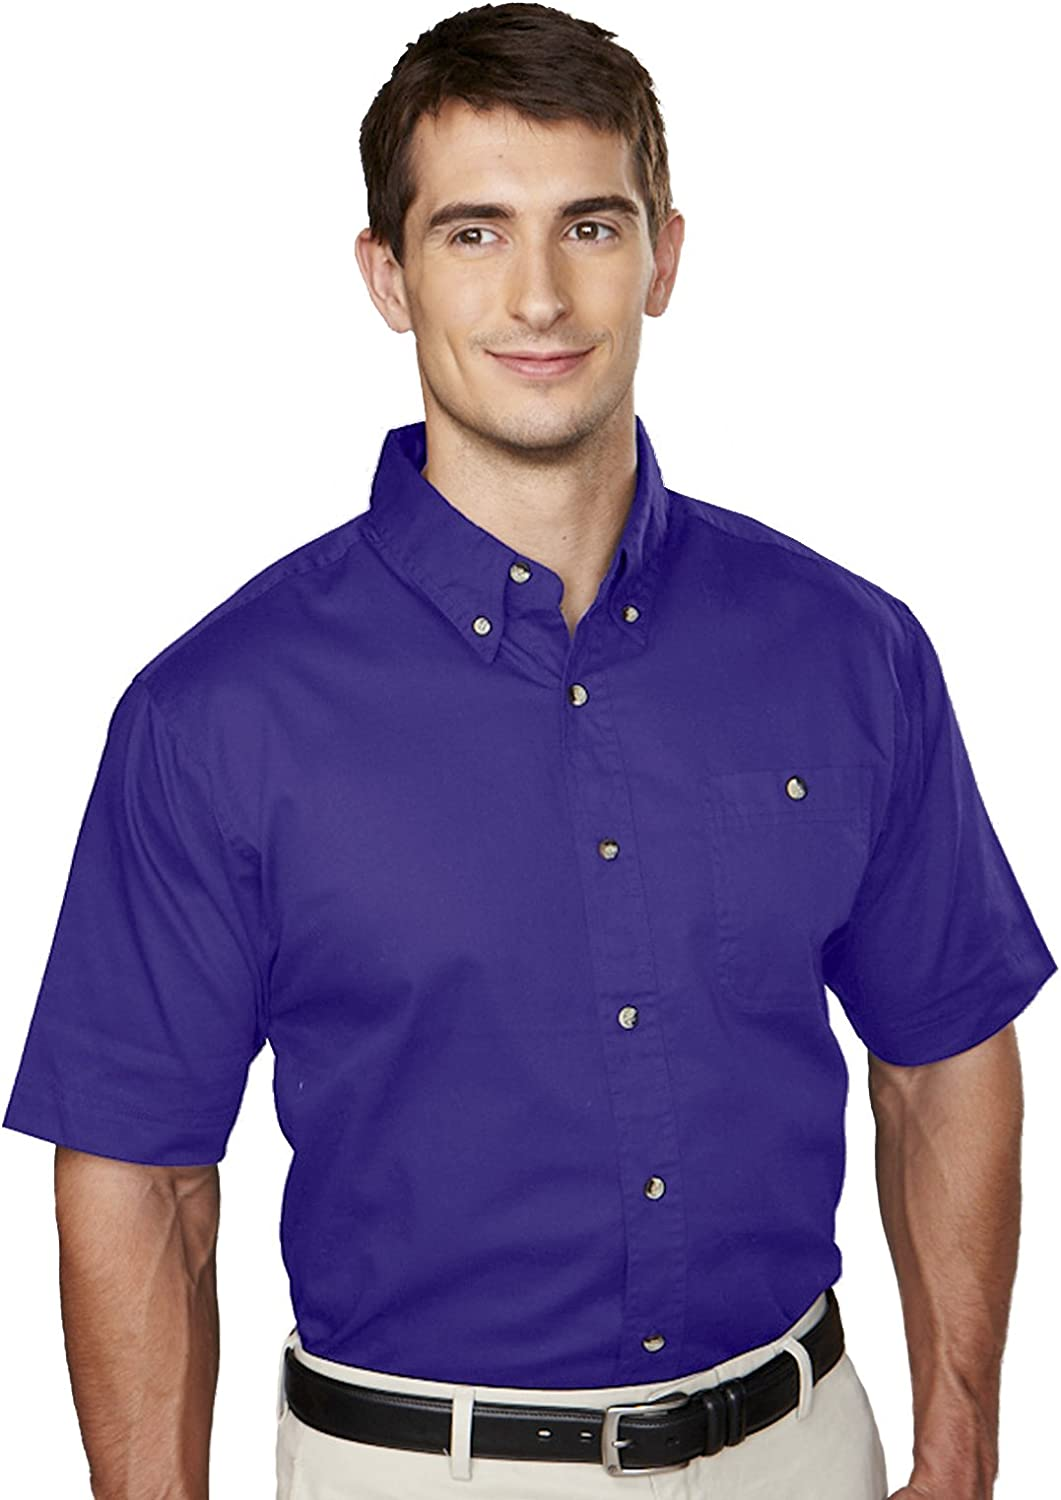 Big and Tall Short Sleeved 100% Cotton Twill Shirt in Purple